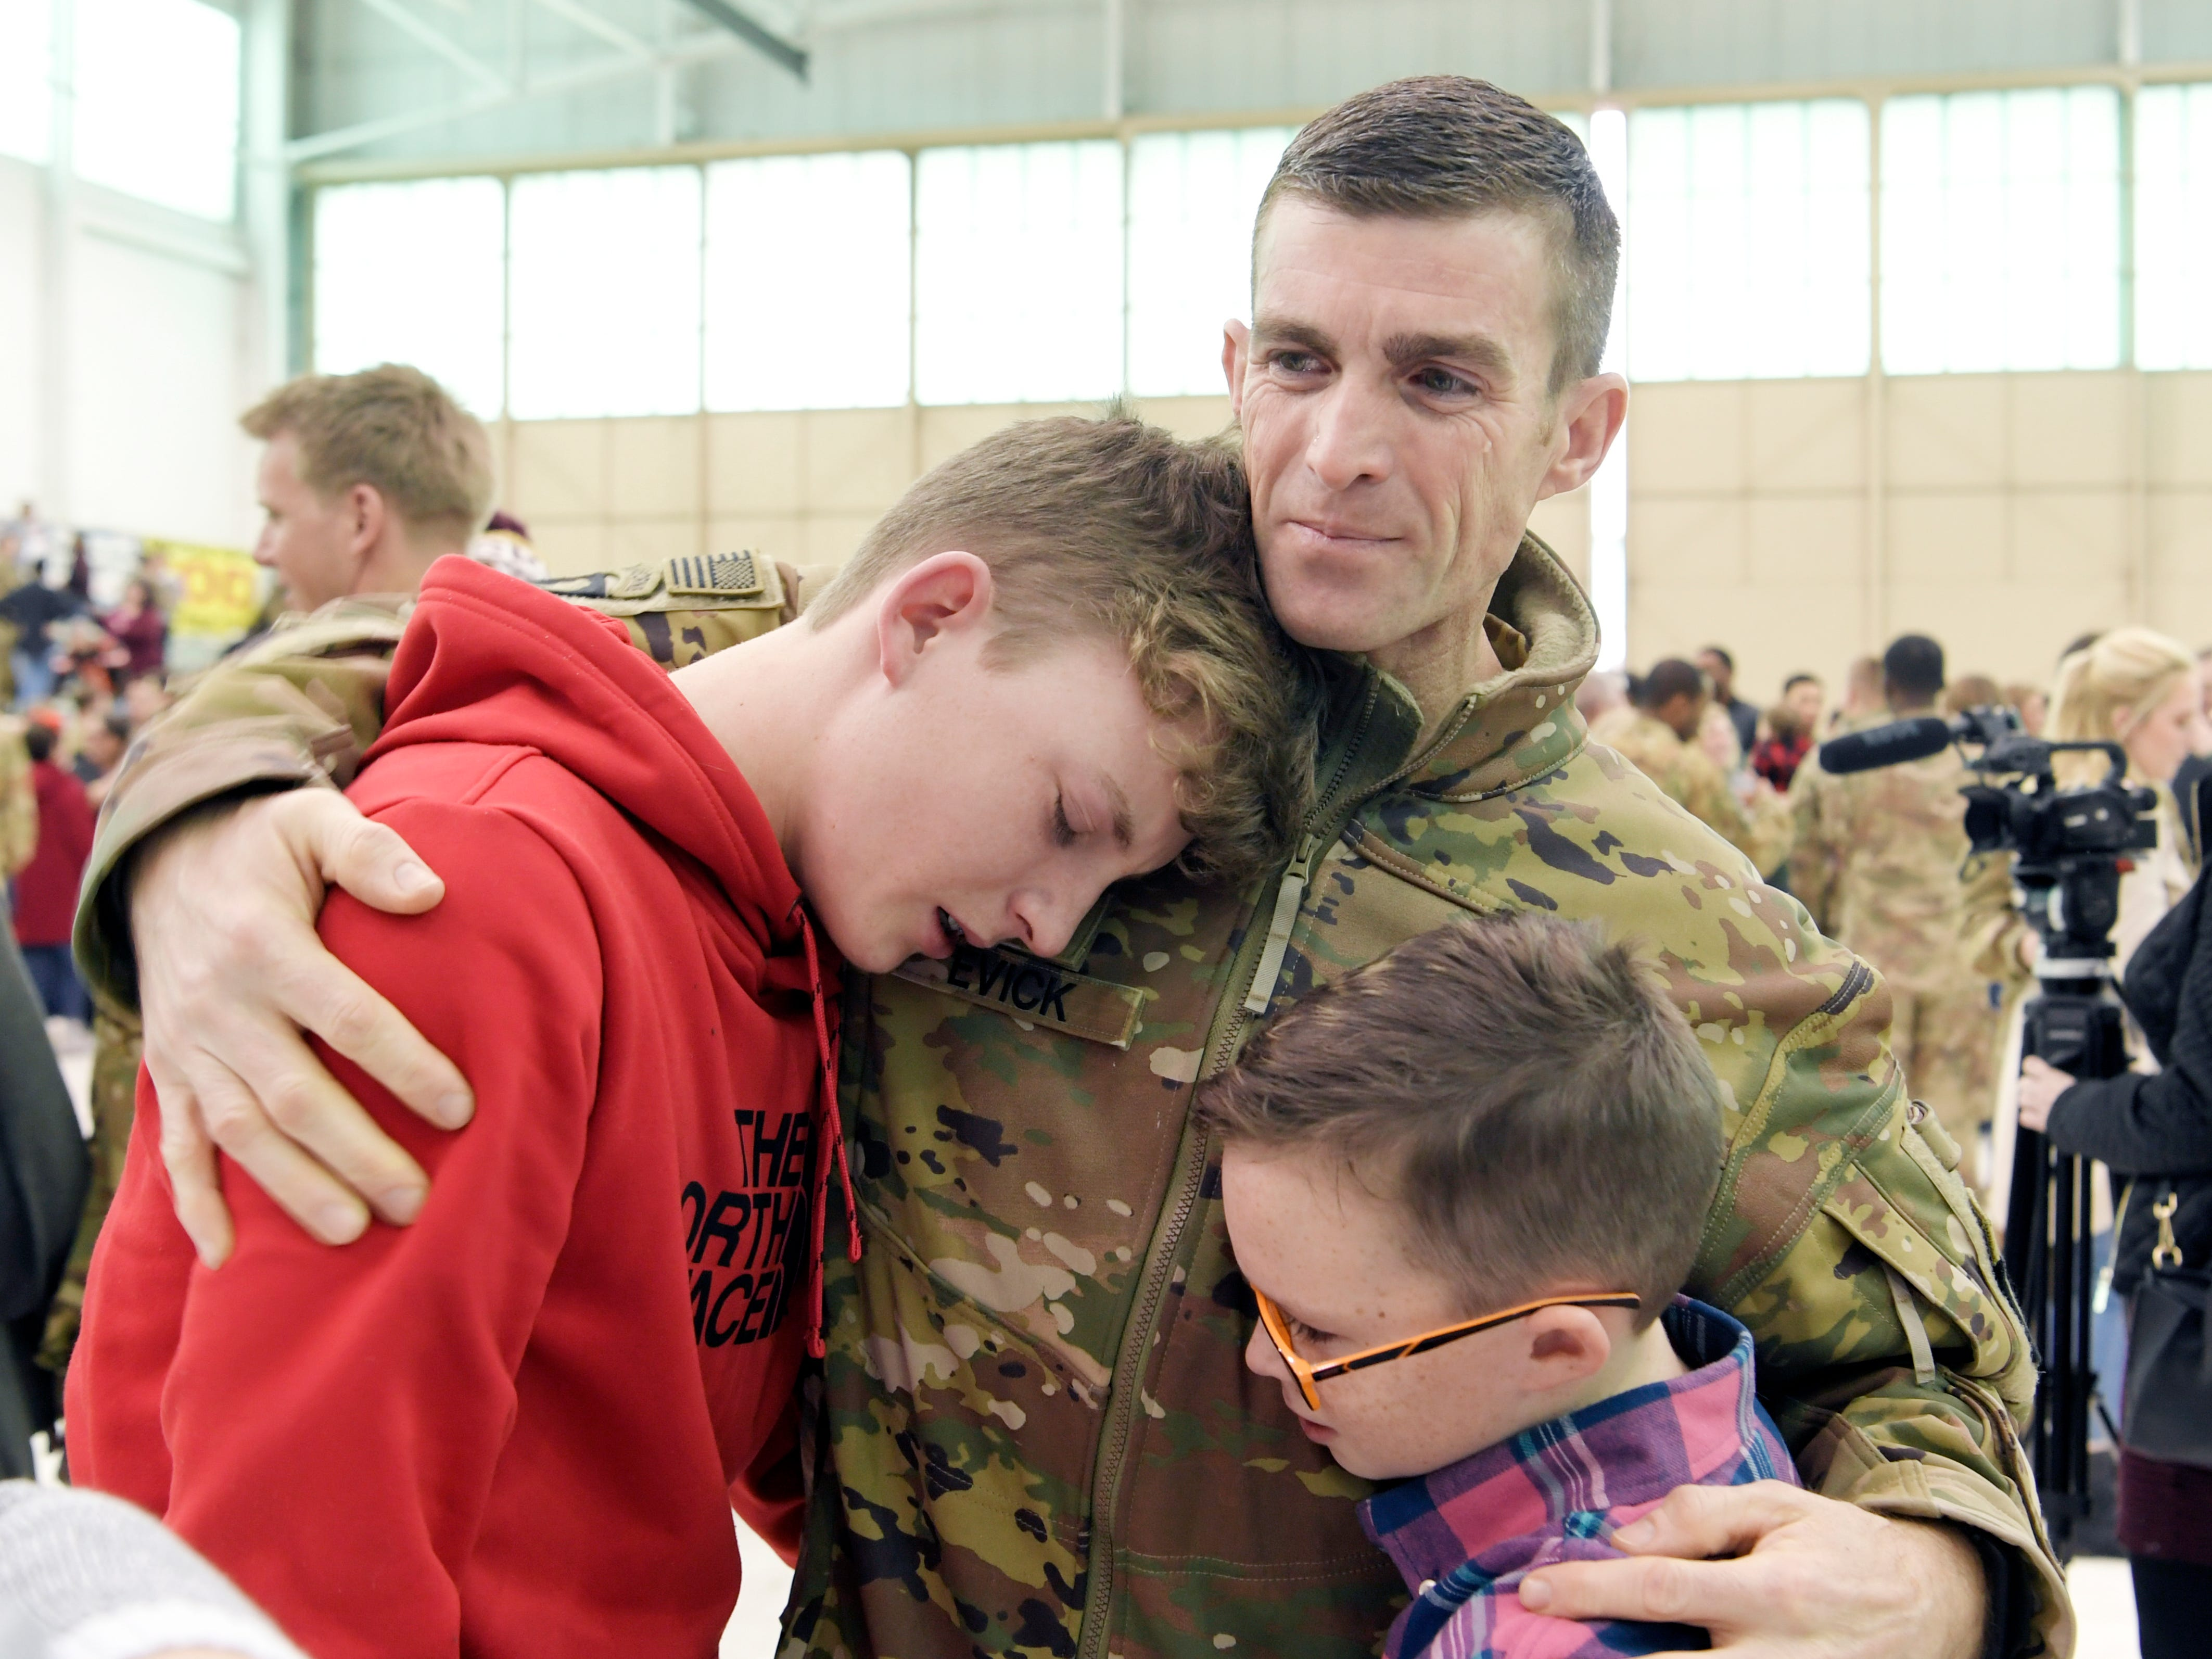 Keagan Evick, 15, and his brother, Trenten, 11, are hugged by their father, Kurtis Evick, during a welcome home ceremony for 171 soldiers from 101st Combat Aviation Brigade, 101st Airborne Division (Air Assault) which returned to Fort Campbell, KY on Friday, Feb. 15, 2019 after a nine-month deployment to Afghanistan.